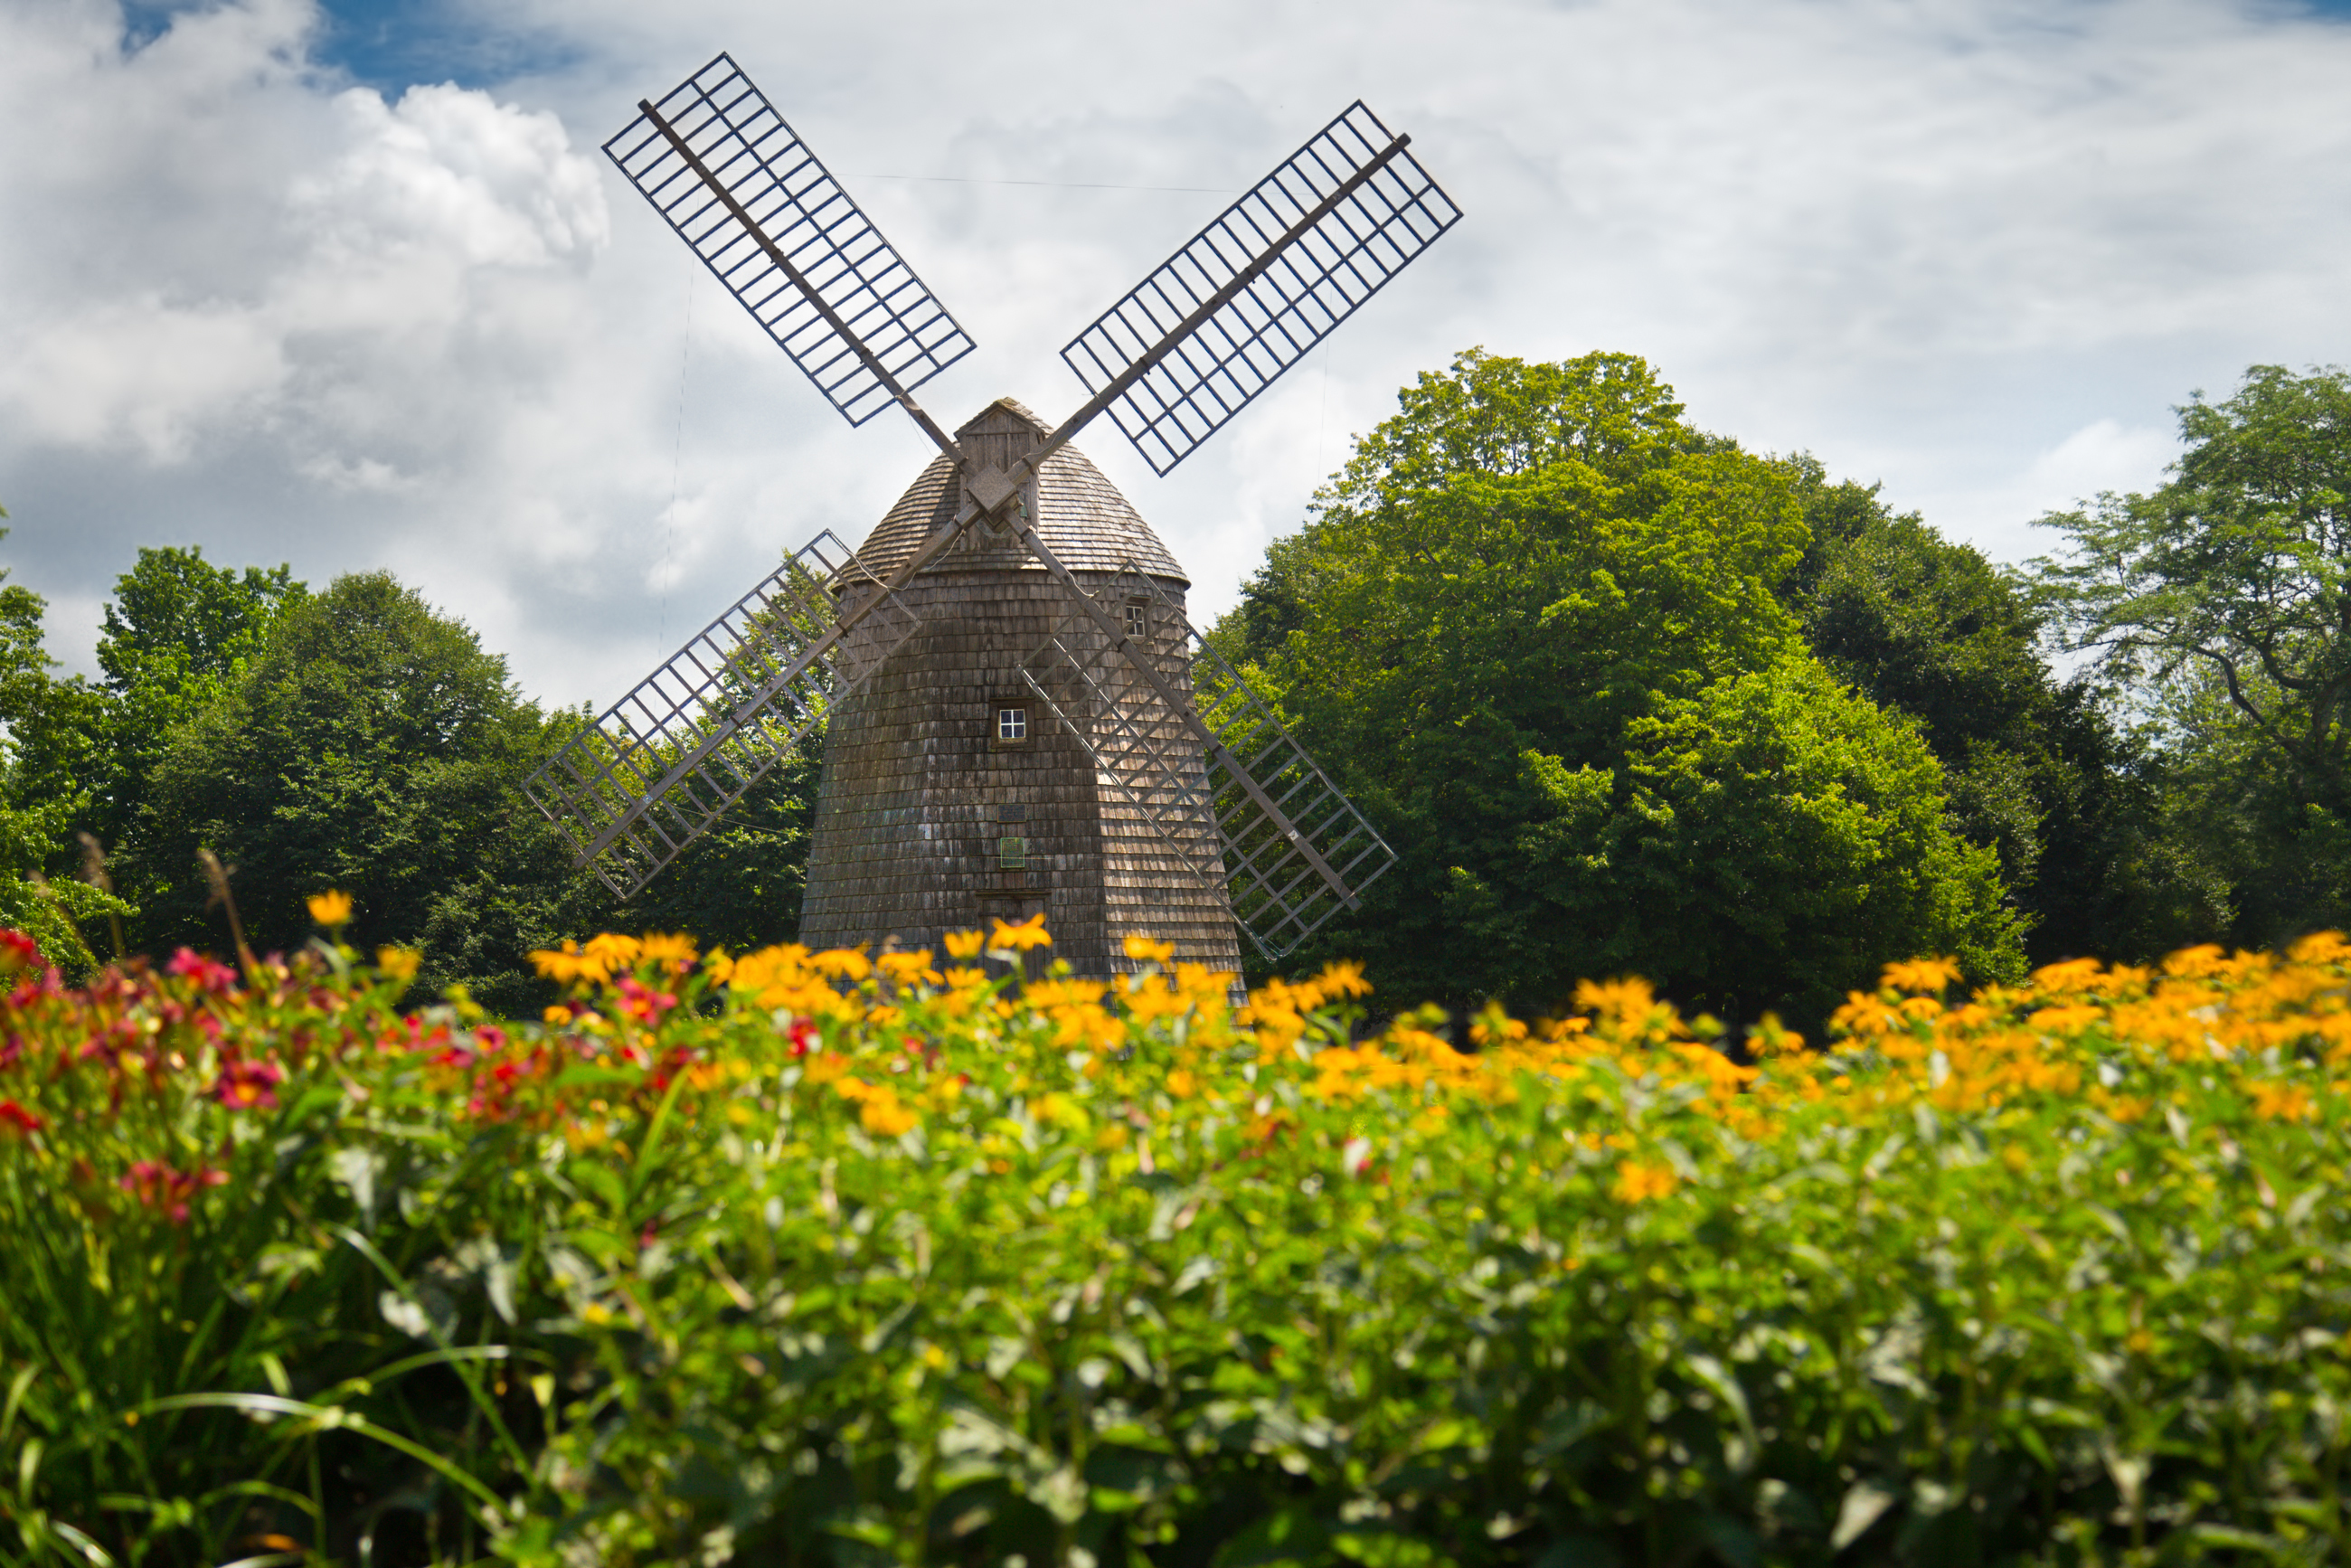 windmill in the middle of an open space with flowers and trees around